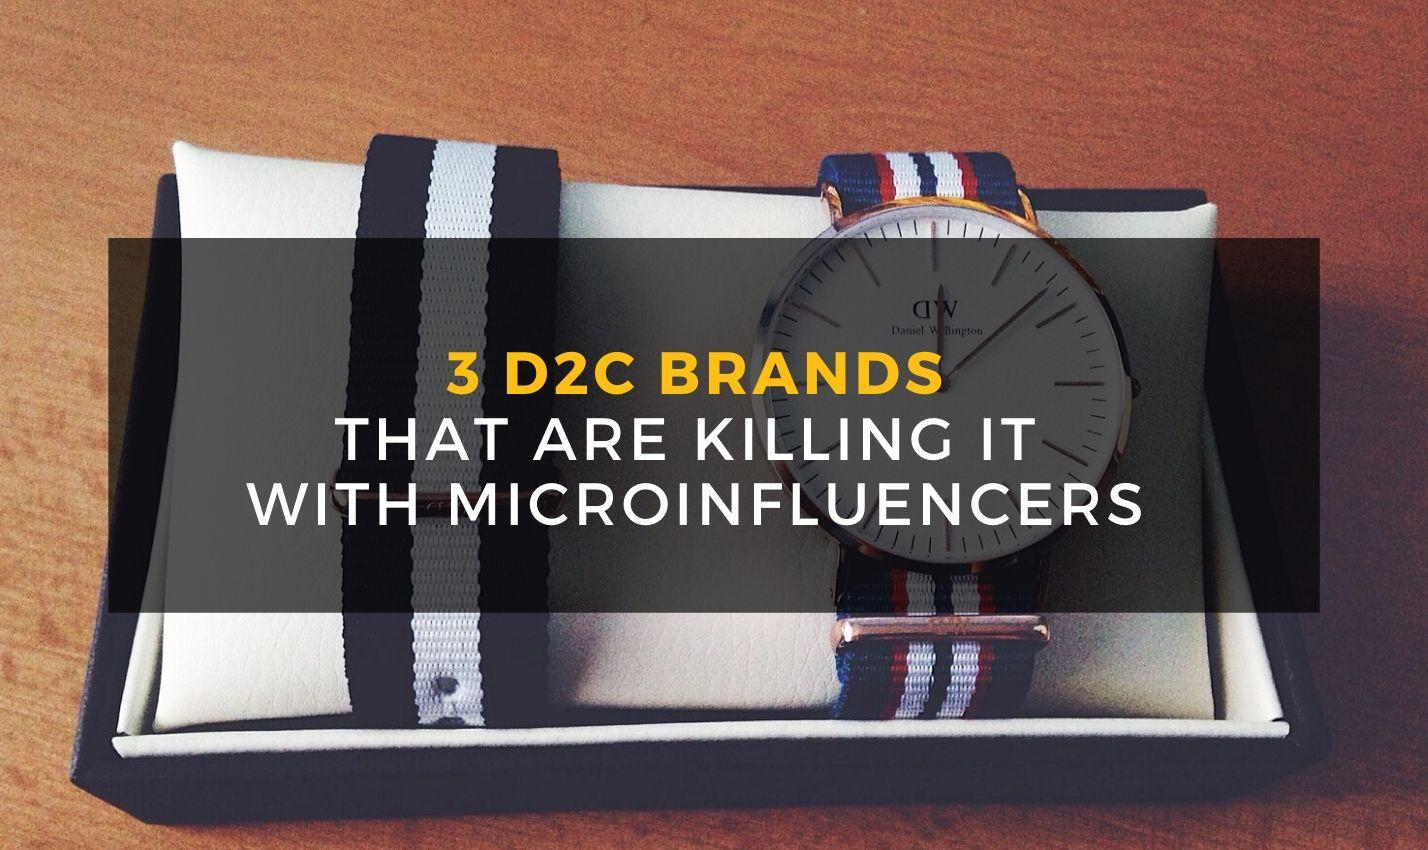 3 DTC Brands working with Micro-influencers